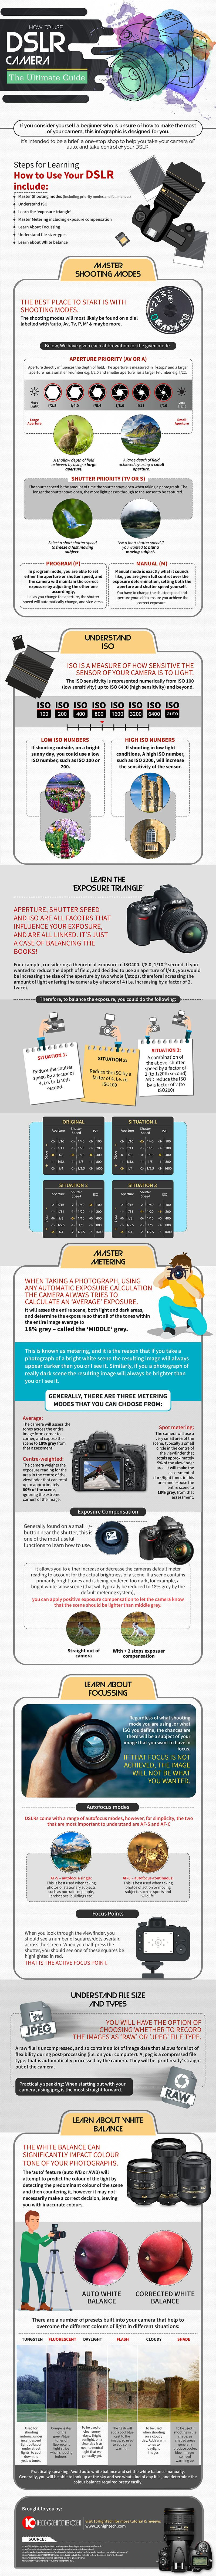 How to Master DSLR Camera: Beginner's Guide - Infographic